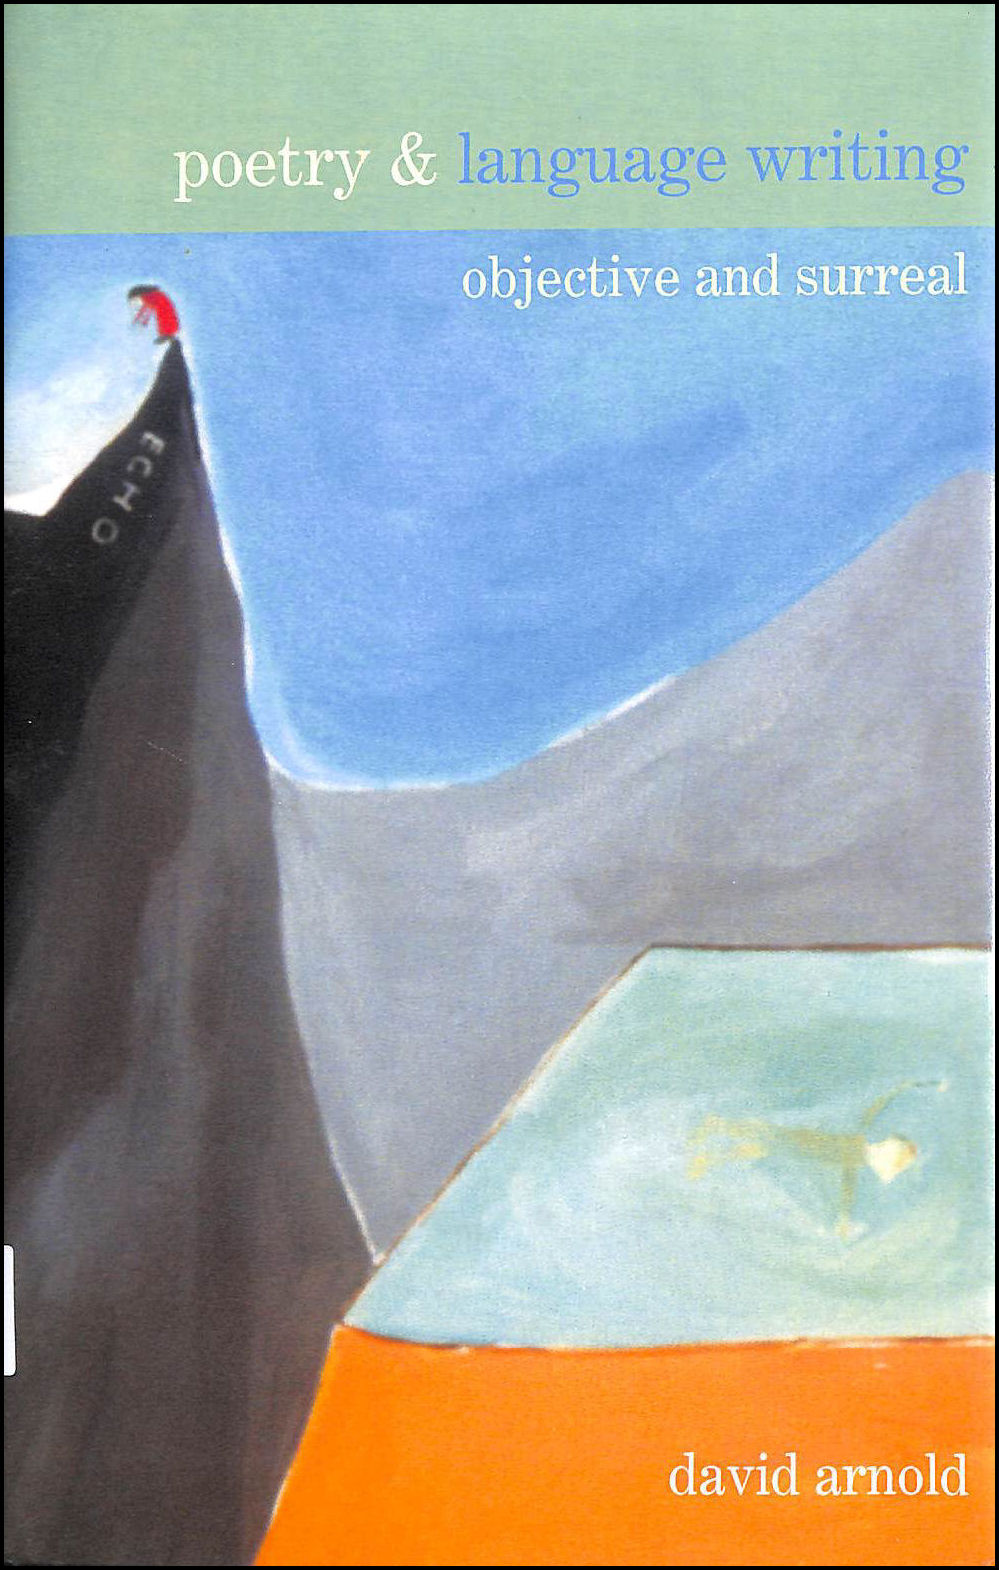 Poetry & Language Writing: Objective and Surreal, David Arnold